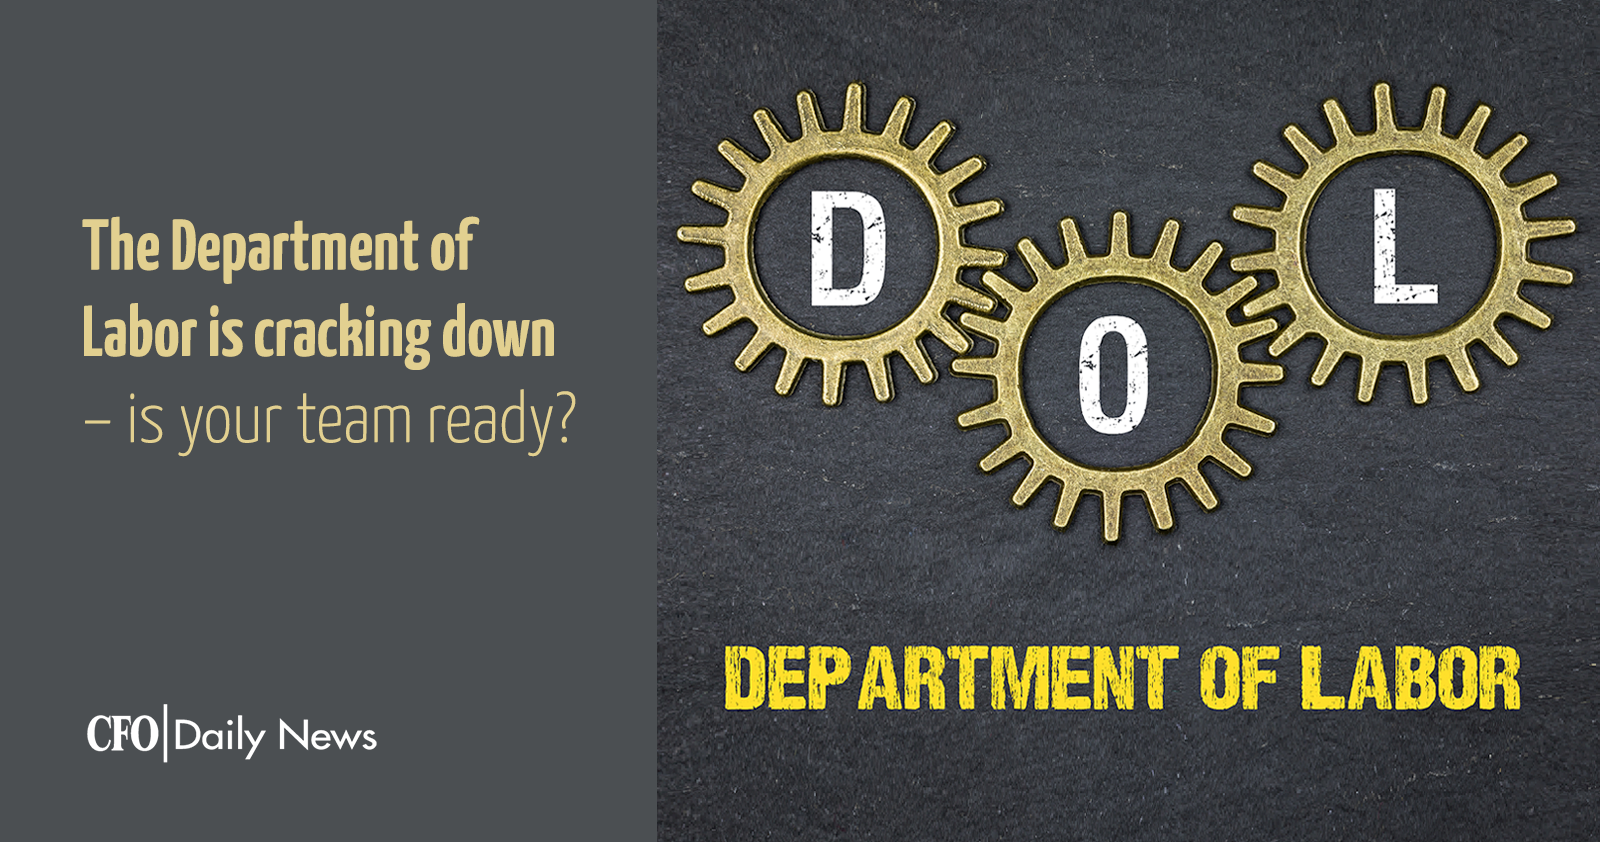 the department of labor is cracking down is your team ready